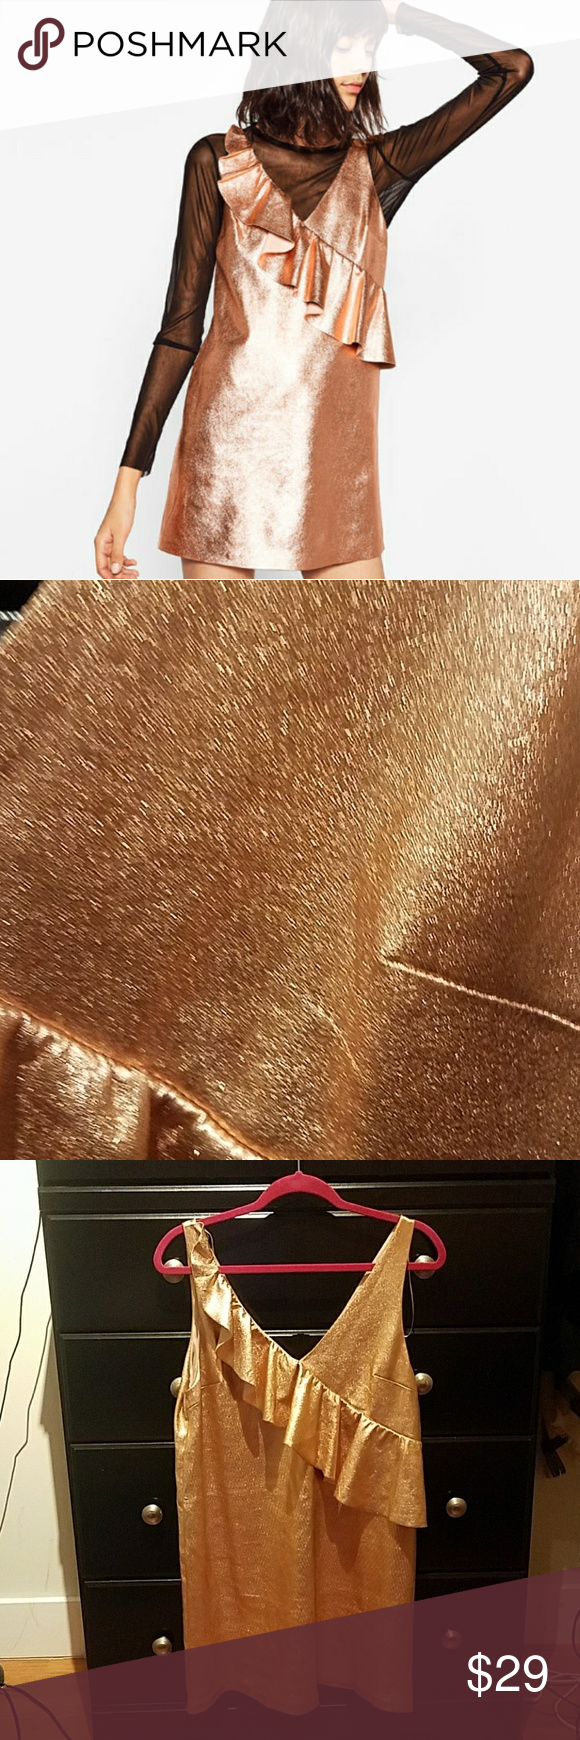 Uncategorized Leather Like Material nwt zara shiny ruffle dress beautiful rose gold color with a leather like material adorable on the front has such